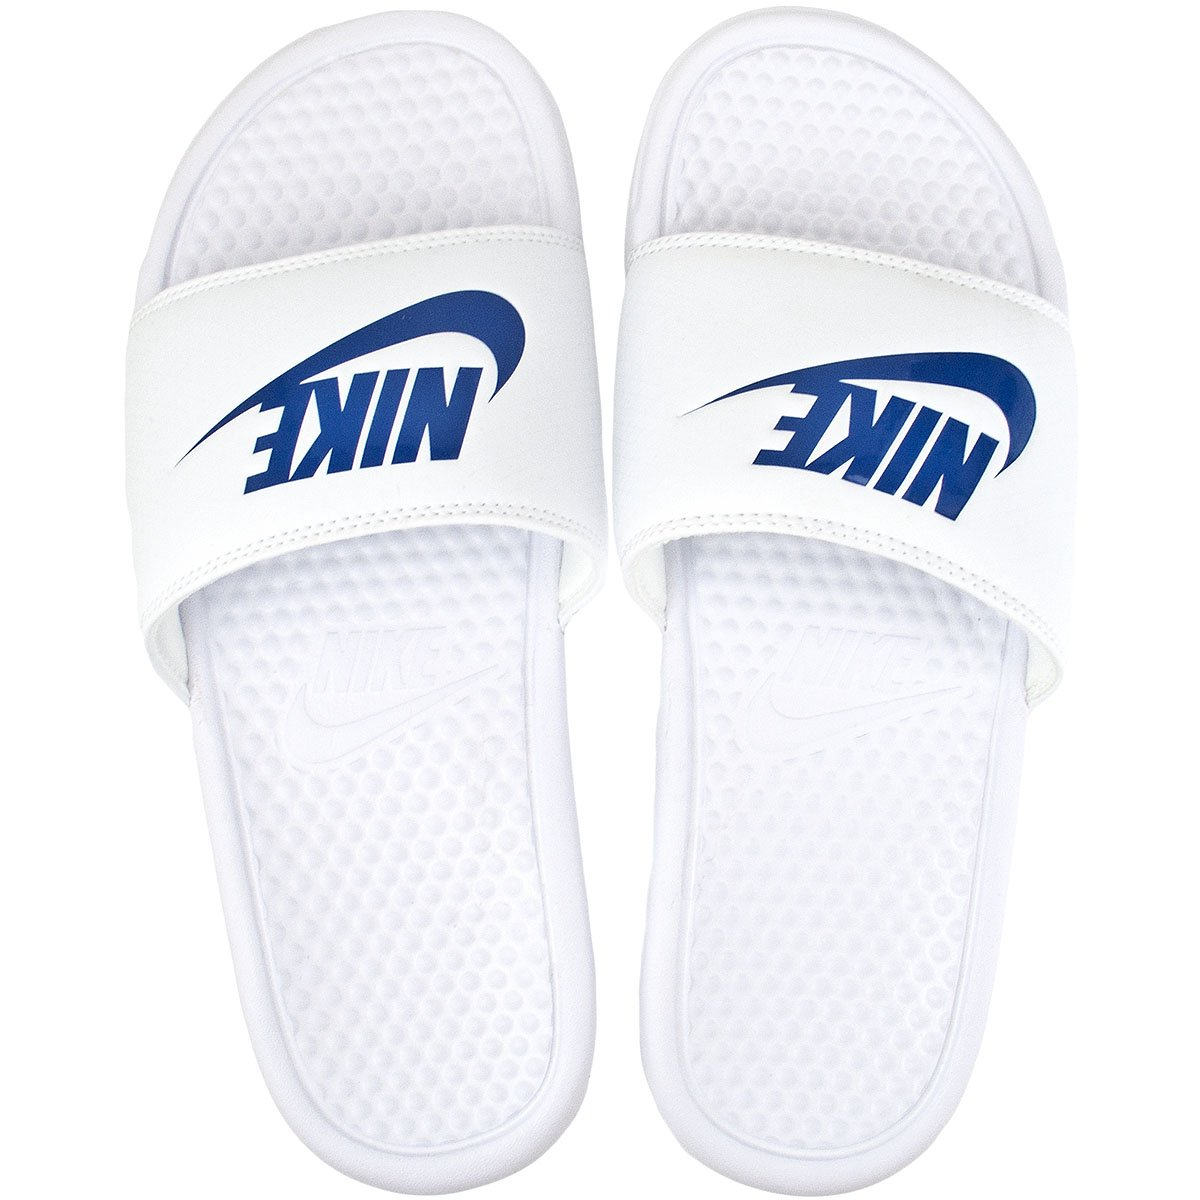 8769079598 Chinelo Nike Benassi Just Do It 343880